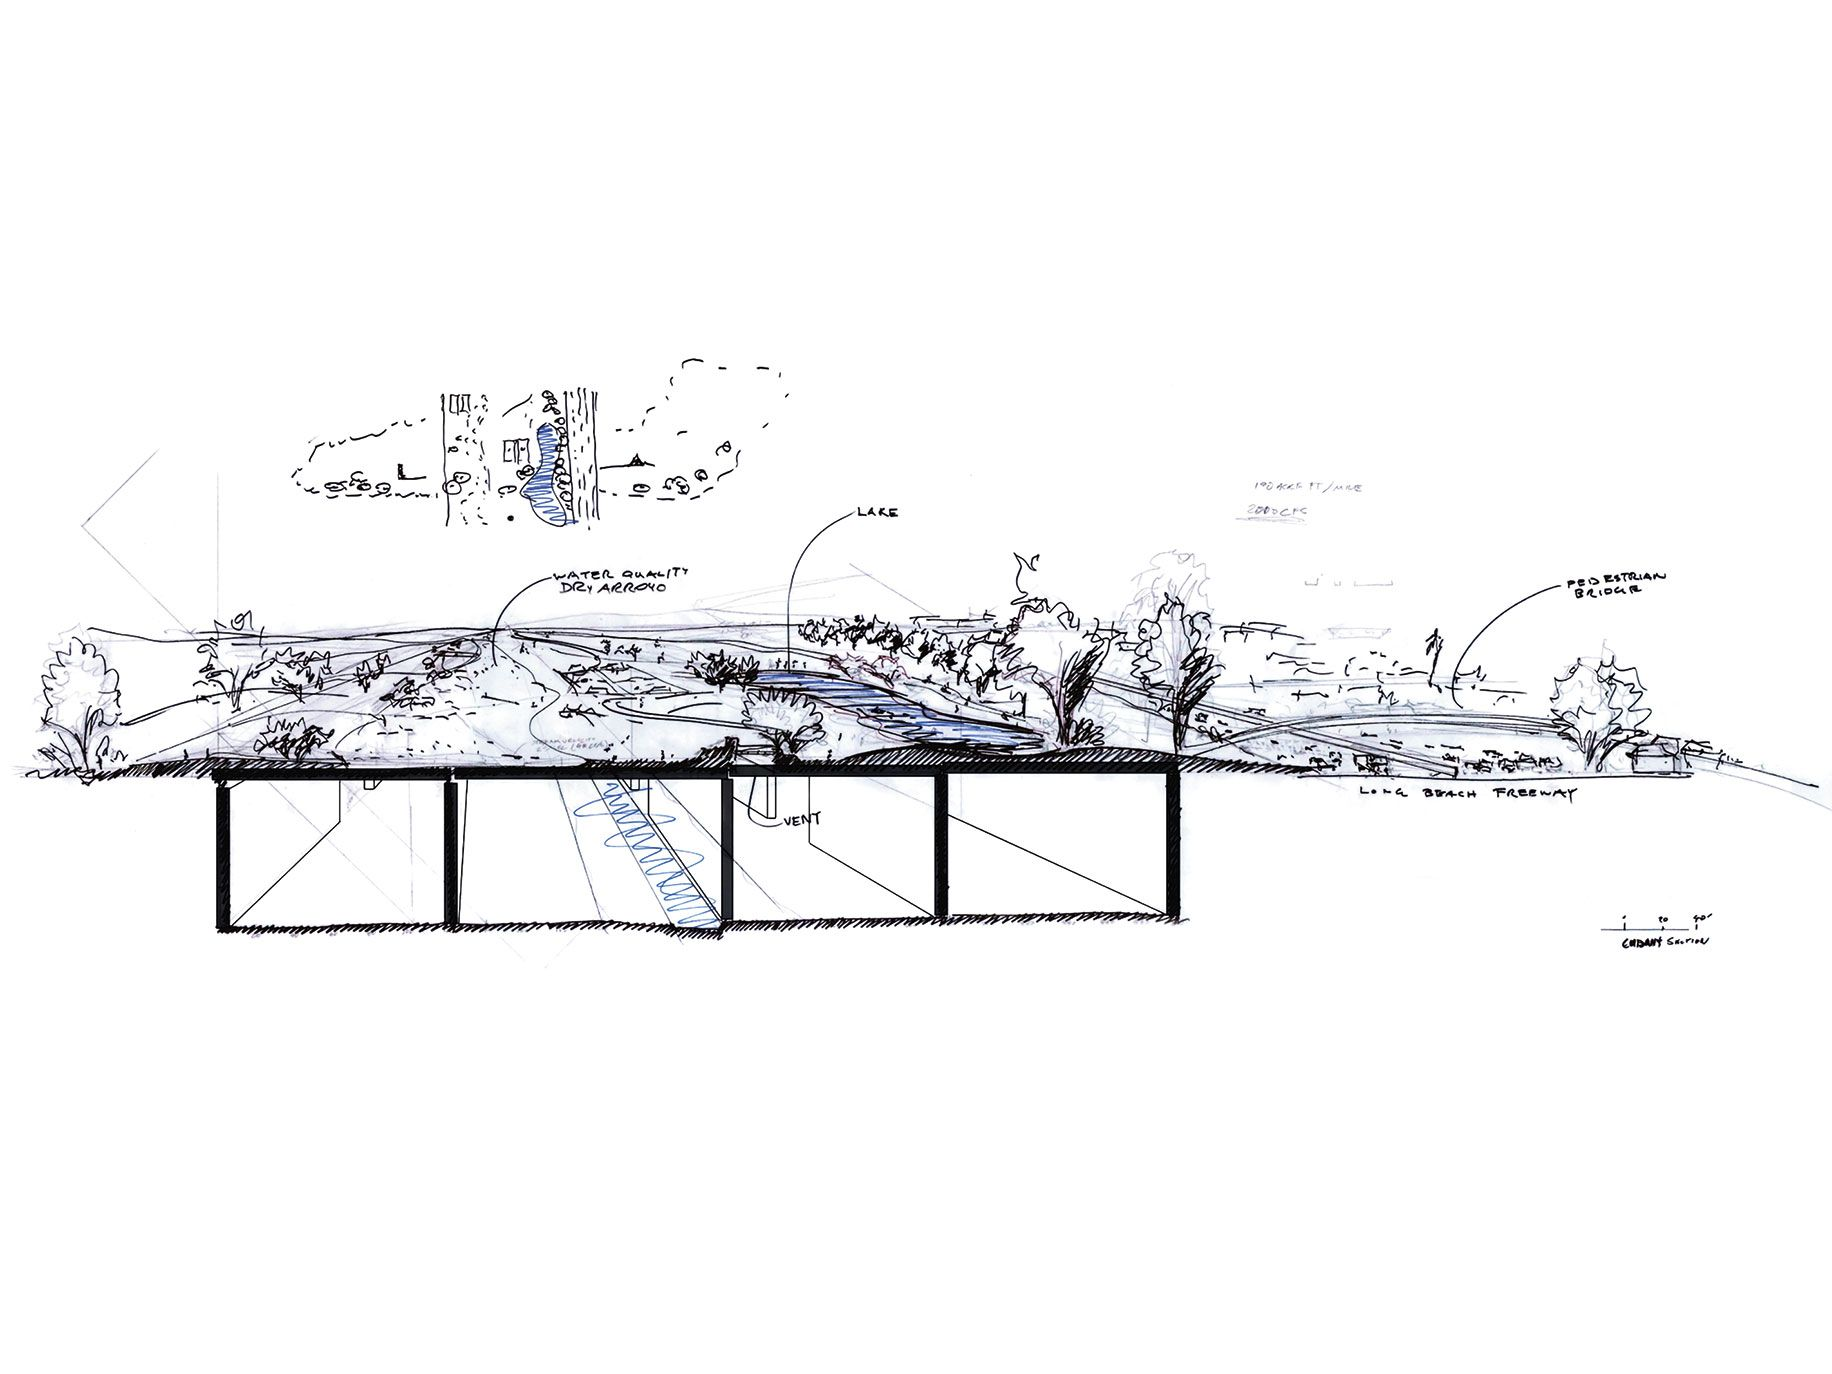 A sketch of Gehry's platforming concept for a three-mile stretch of the L.A. River, which would create acres of parkland above the existing riverbed.